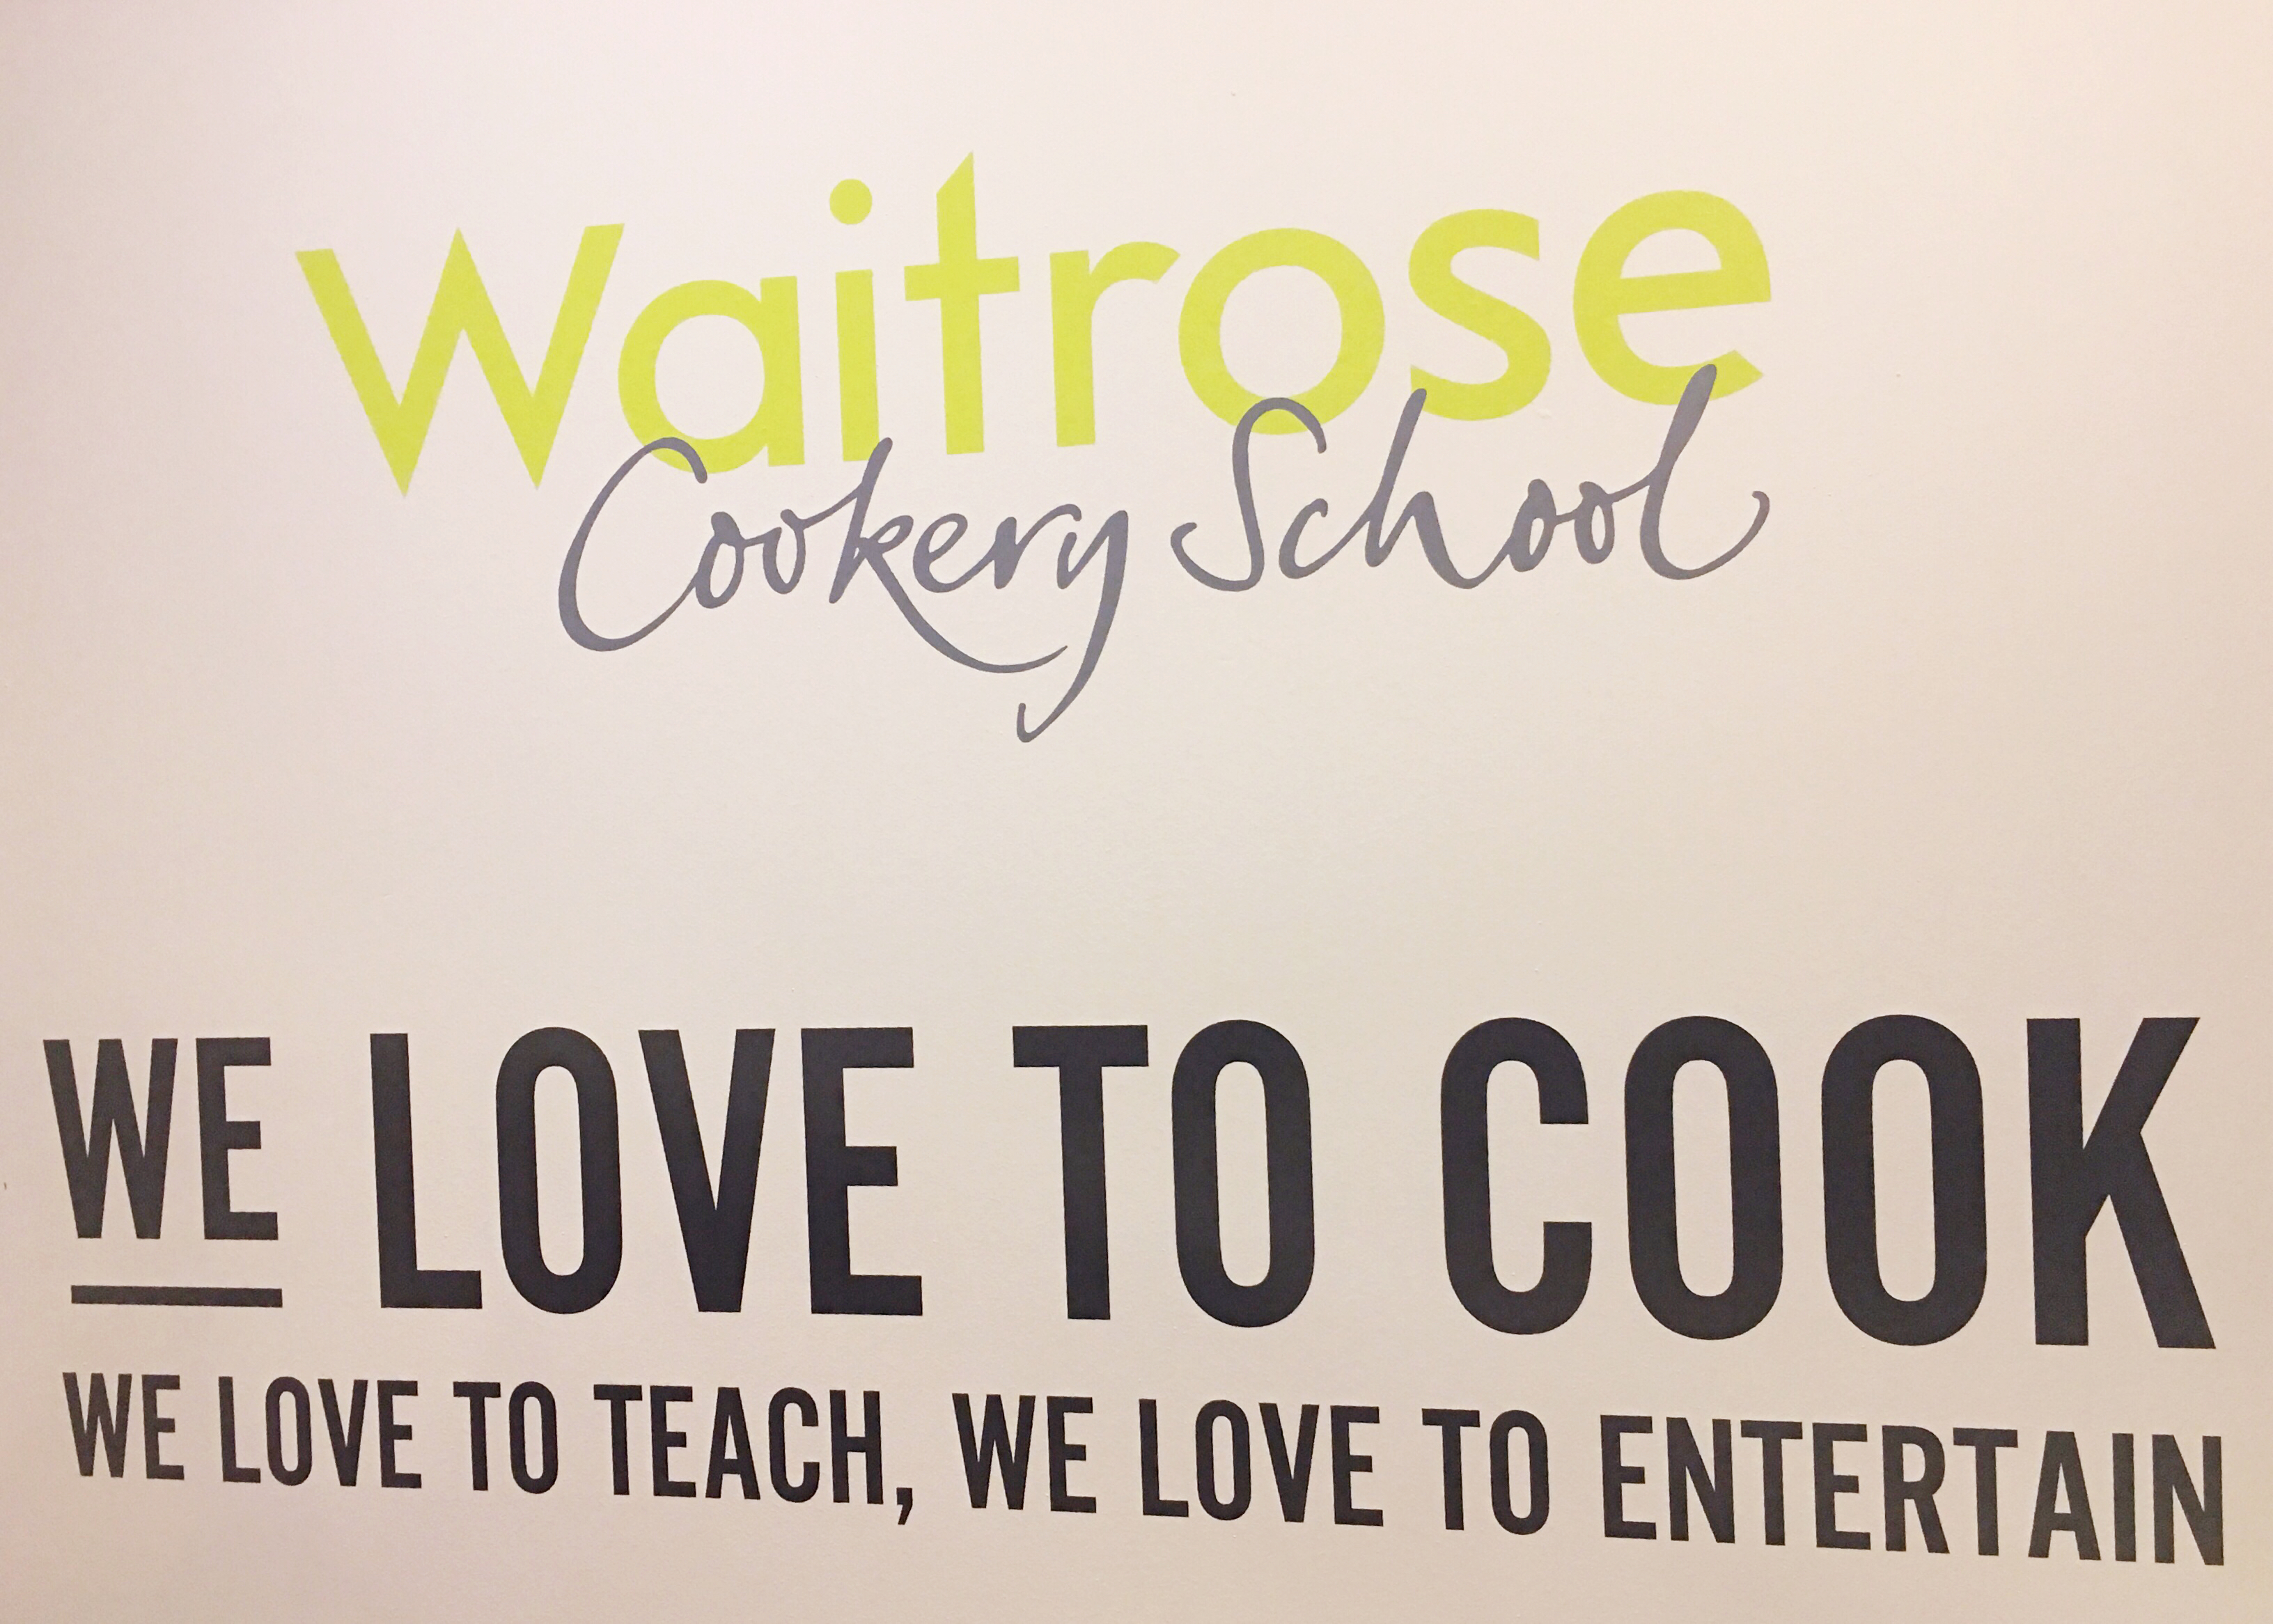 Beachhutcook at Waitrose Cookery School